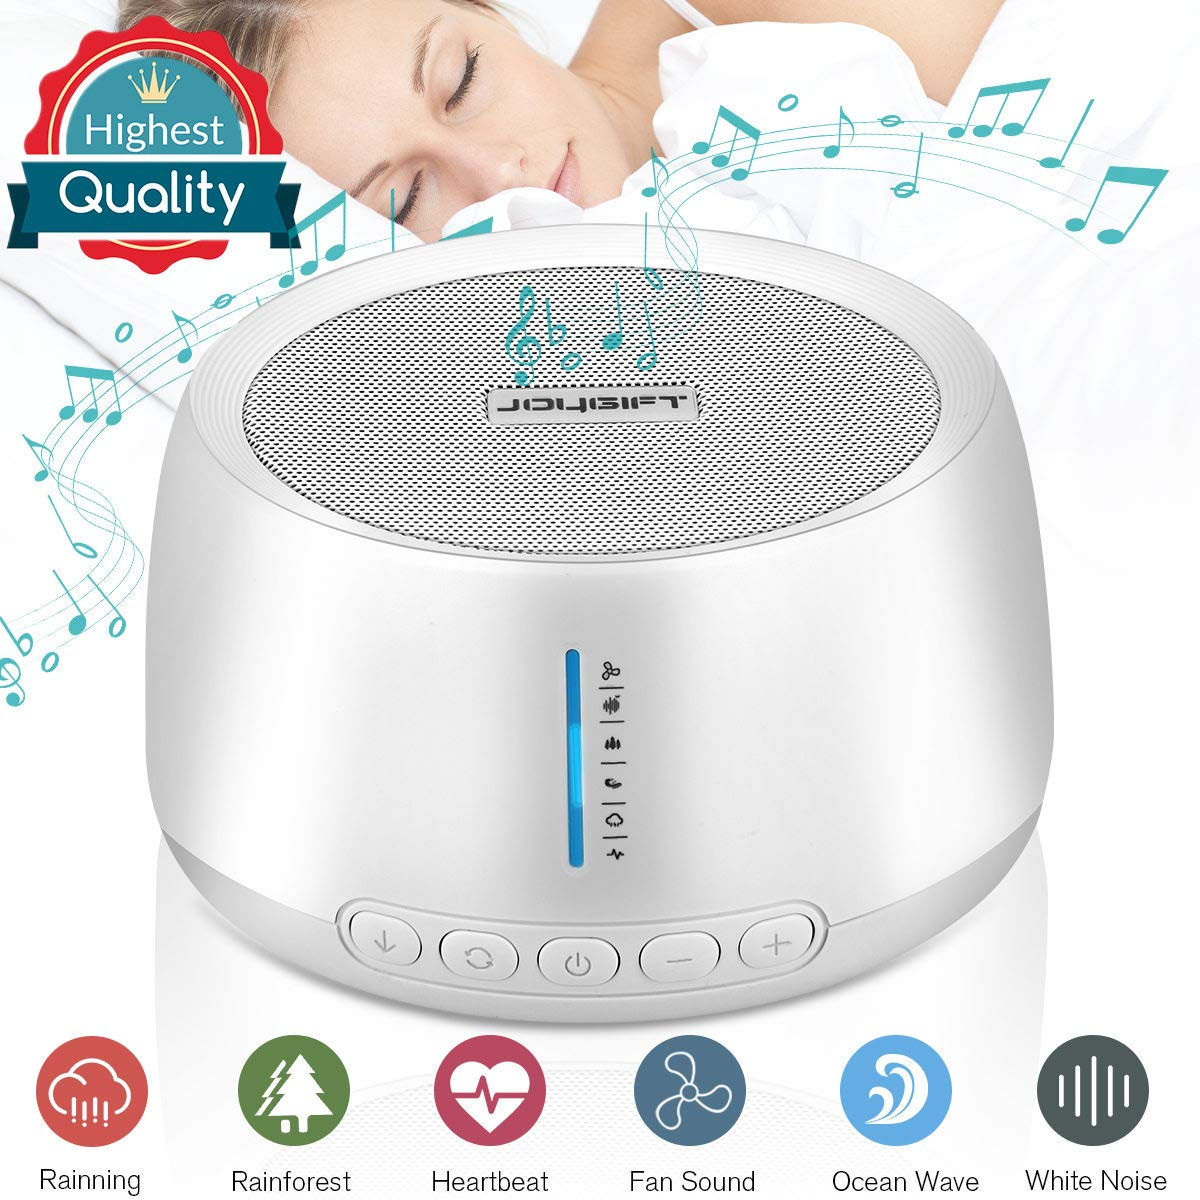 White Noise Sound Machine for Sleeping Baby Kids Adults Office Privacy Travel,Portable Sleep Therapy Relaxing Sound Machine Sleep White Noise Machine,Non-looping 6 Soothing Nature Sounds,Rechargeable